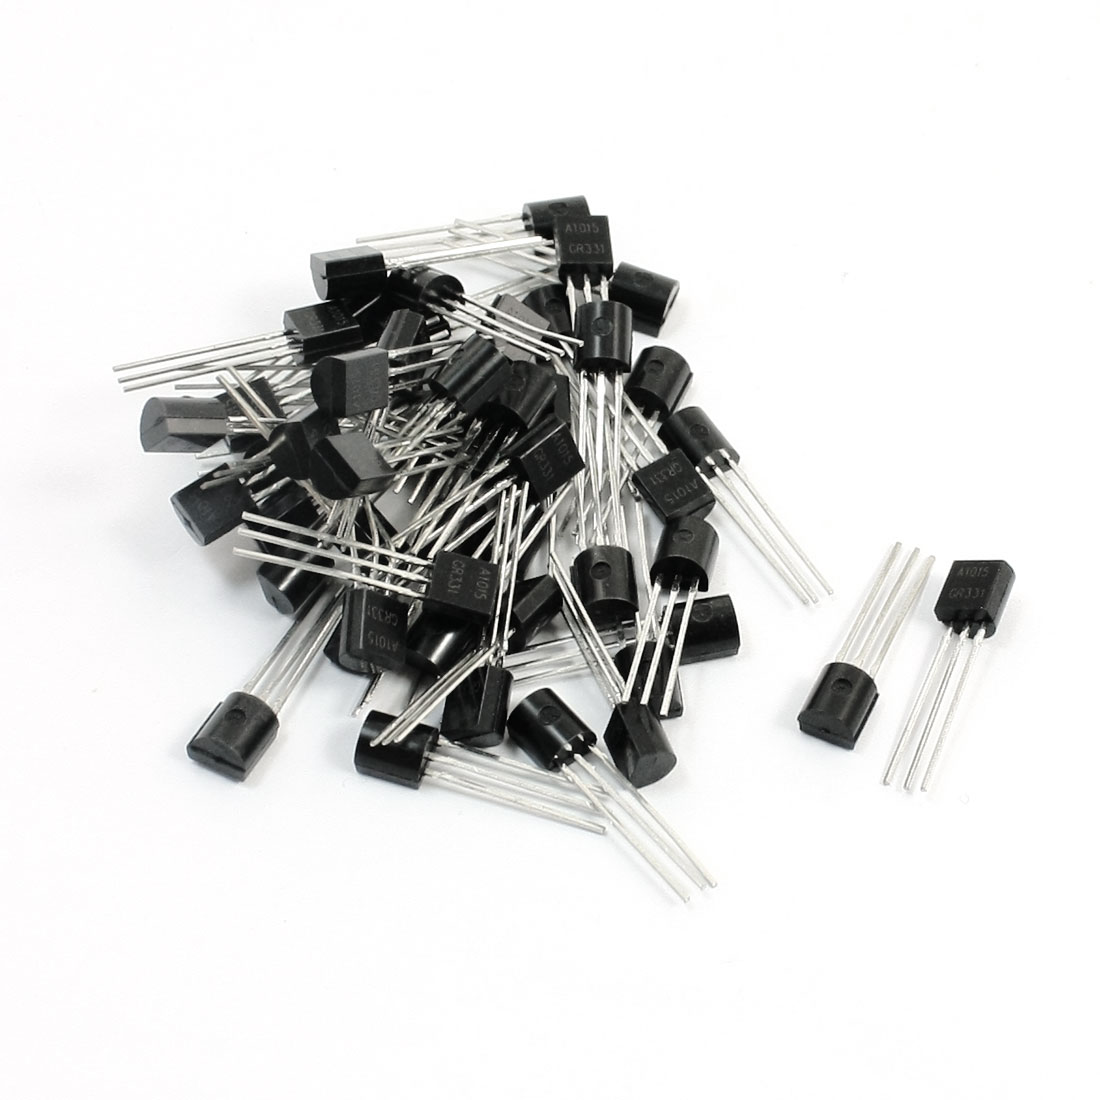 2SA1015 PNP TO-92 Electric Component 3 Pins Through Hole PCB Surface Mount General Purpose Power Transistor 50V 0.15A 50Pcs